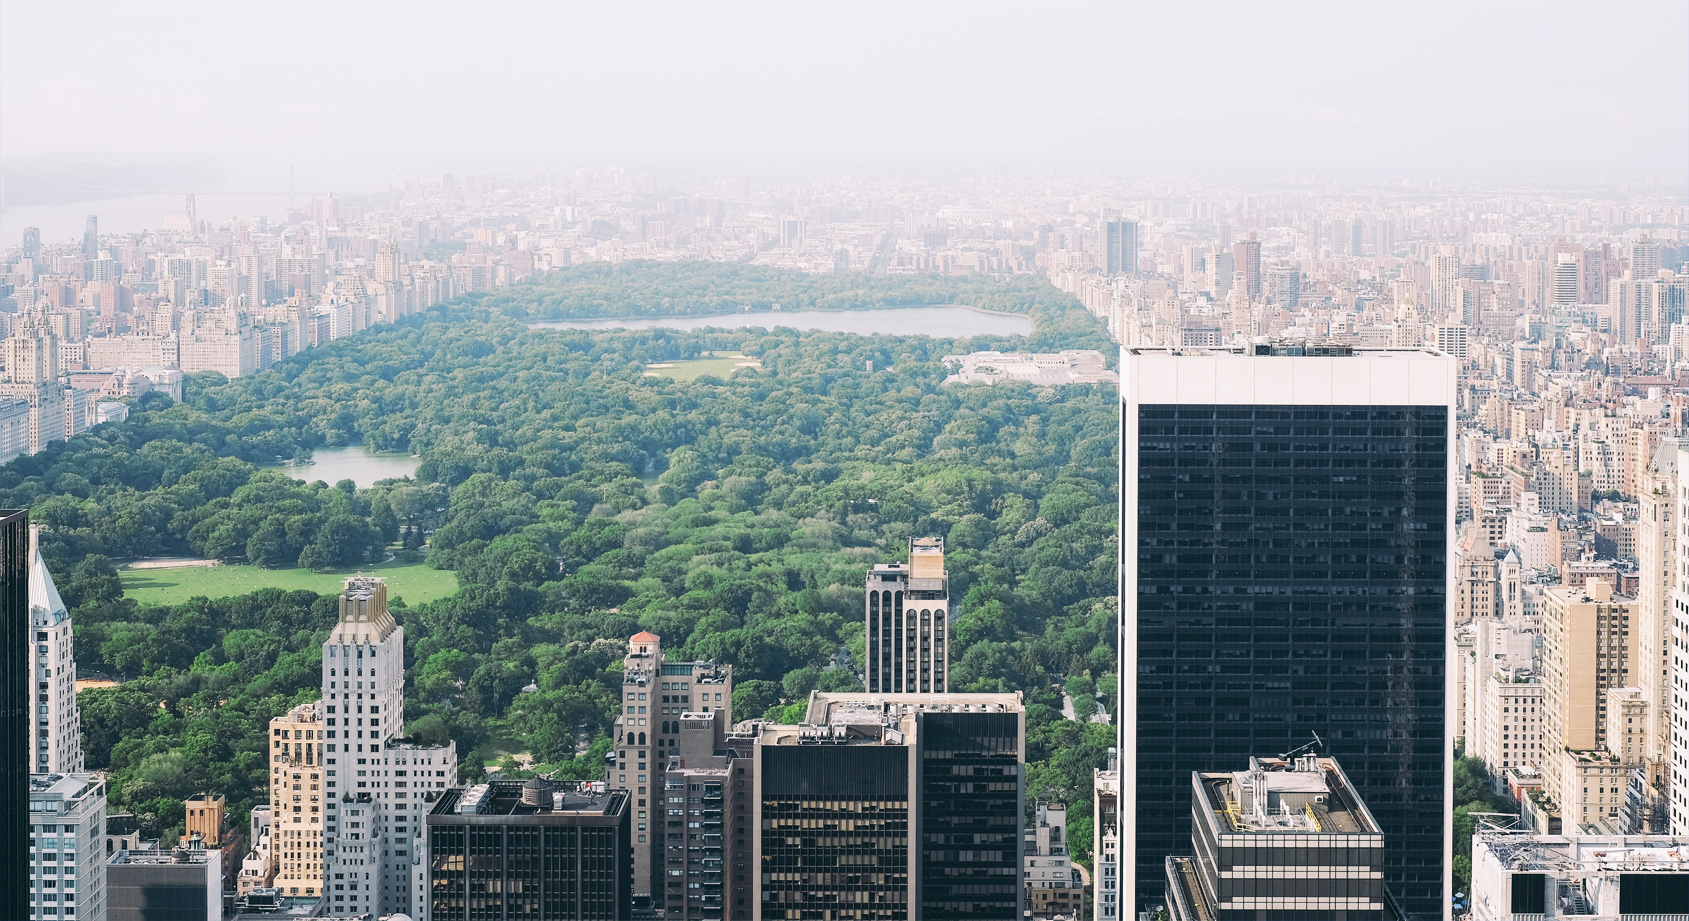 Central ParkNY